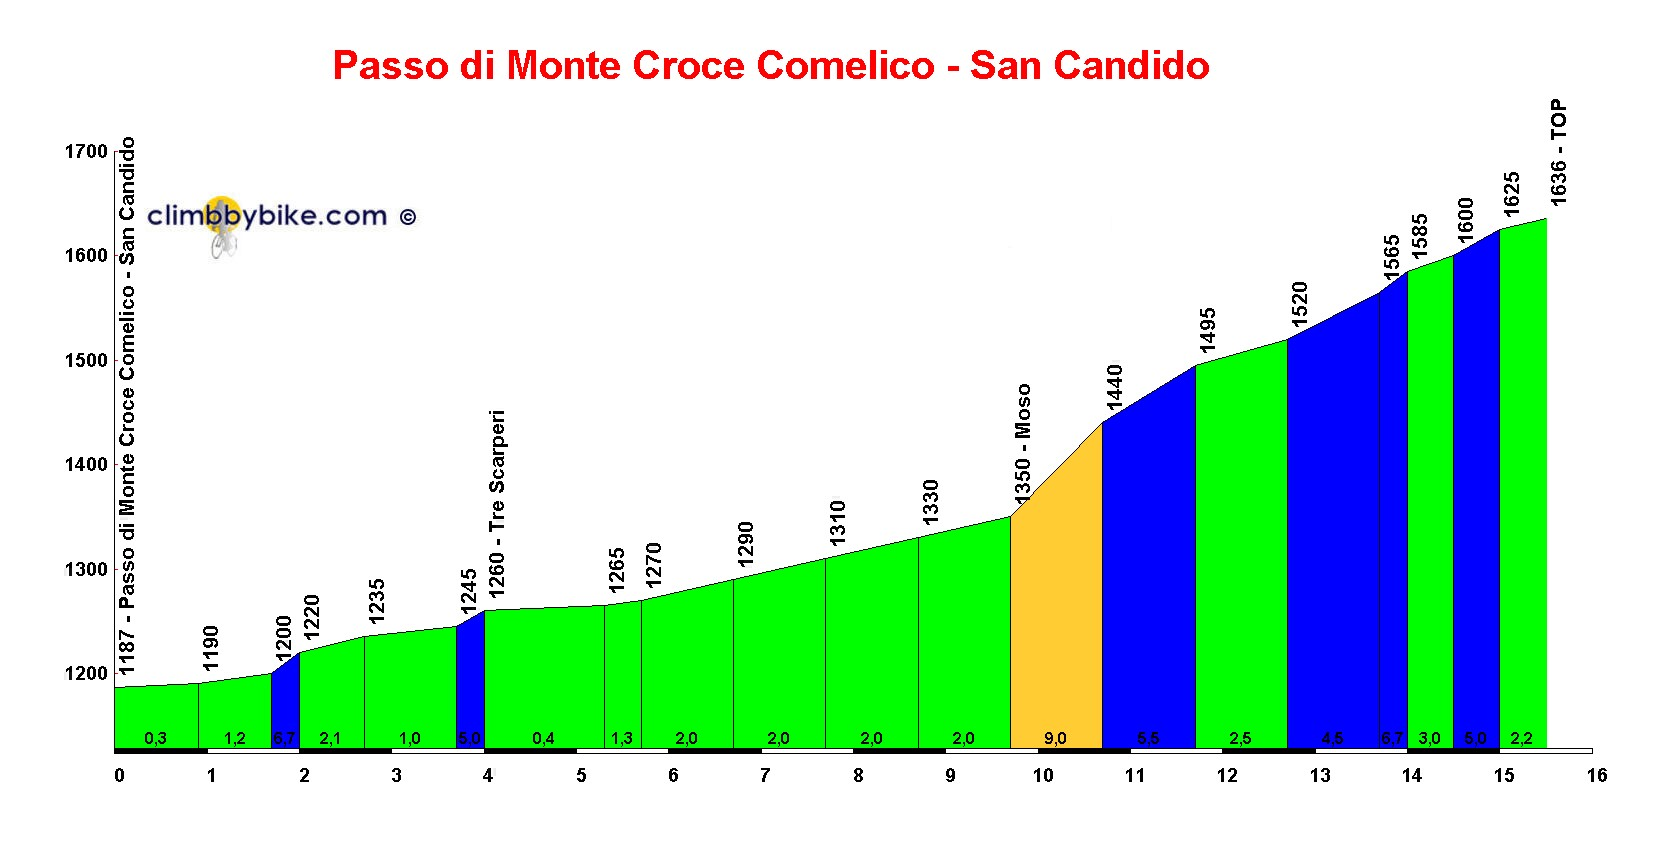 Elevation profile for Passo di Monte Croce Comelico